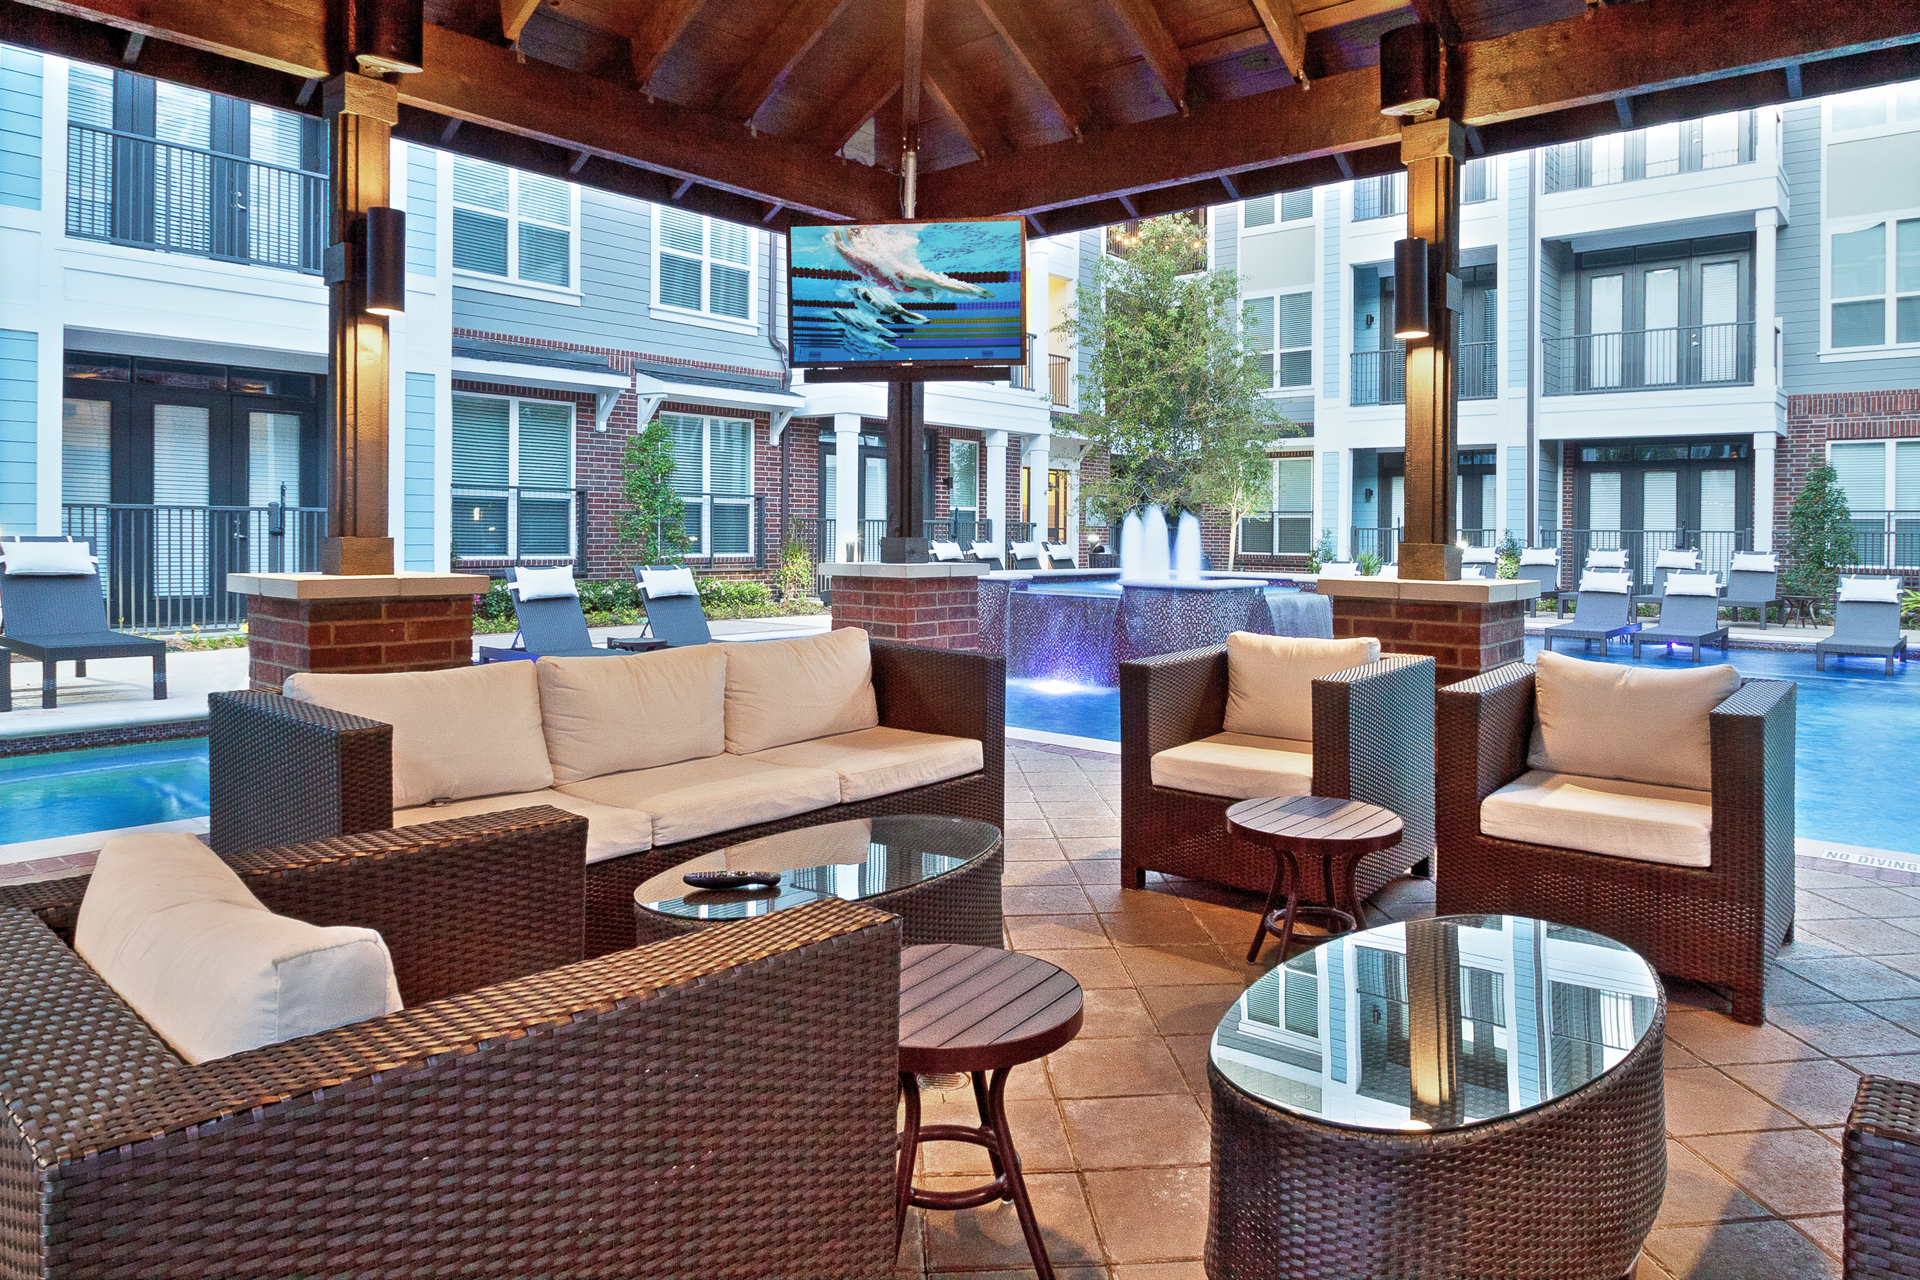 Holden heights apartments in houston tx houston texas - One bedroom apartments in houston ...